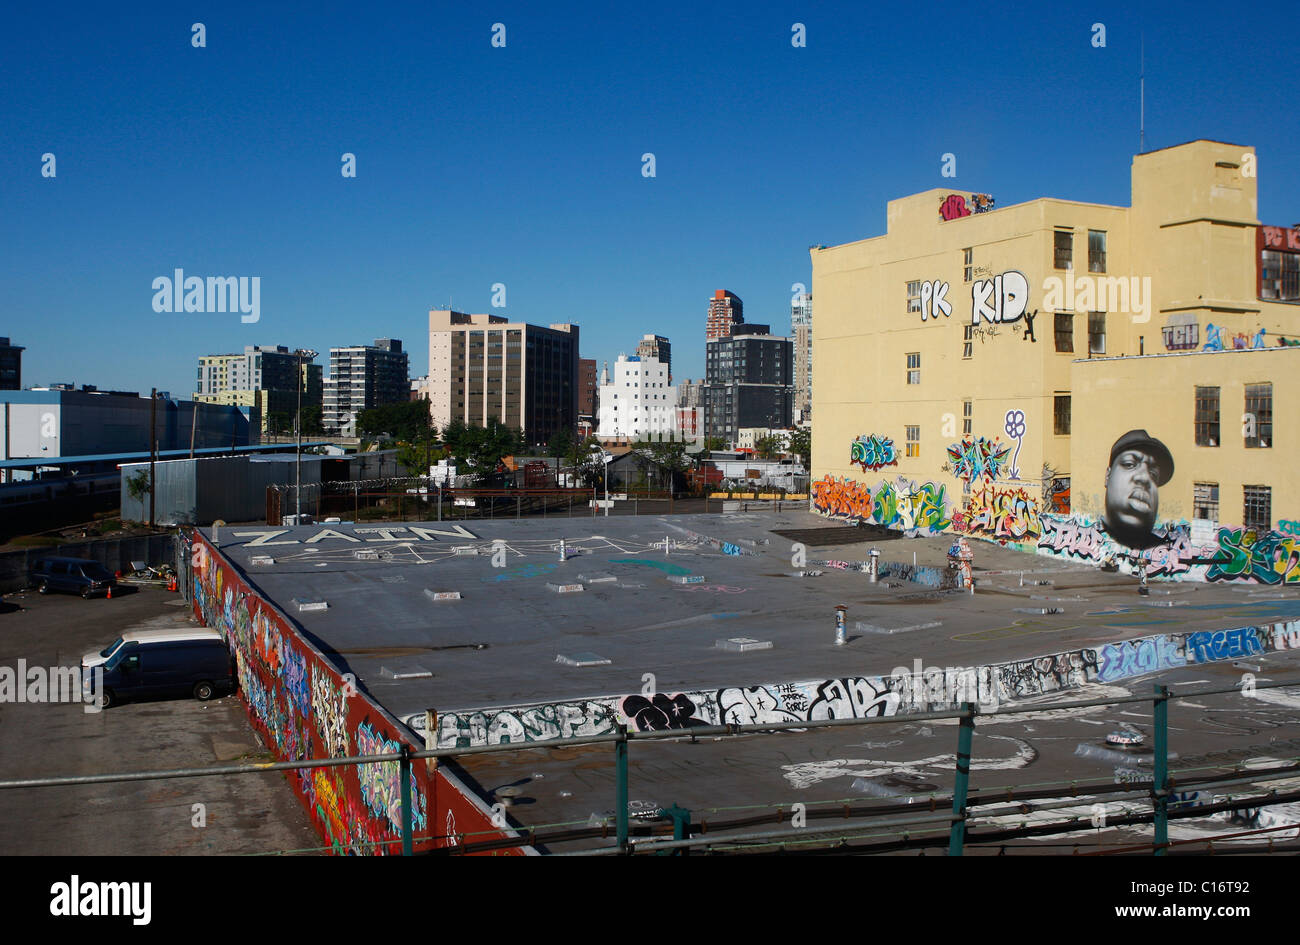 Graffiti on buildings in New York. - Stock Image